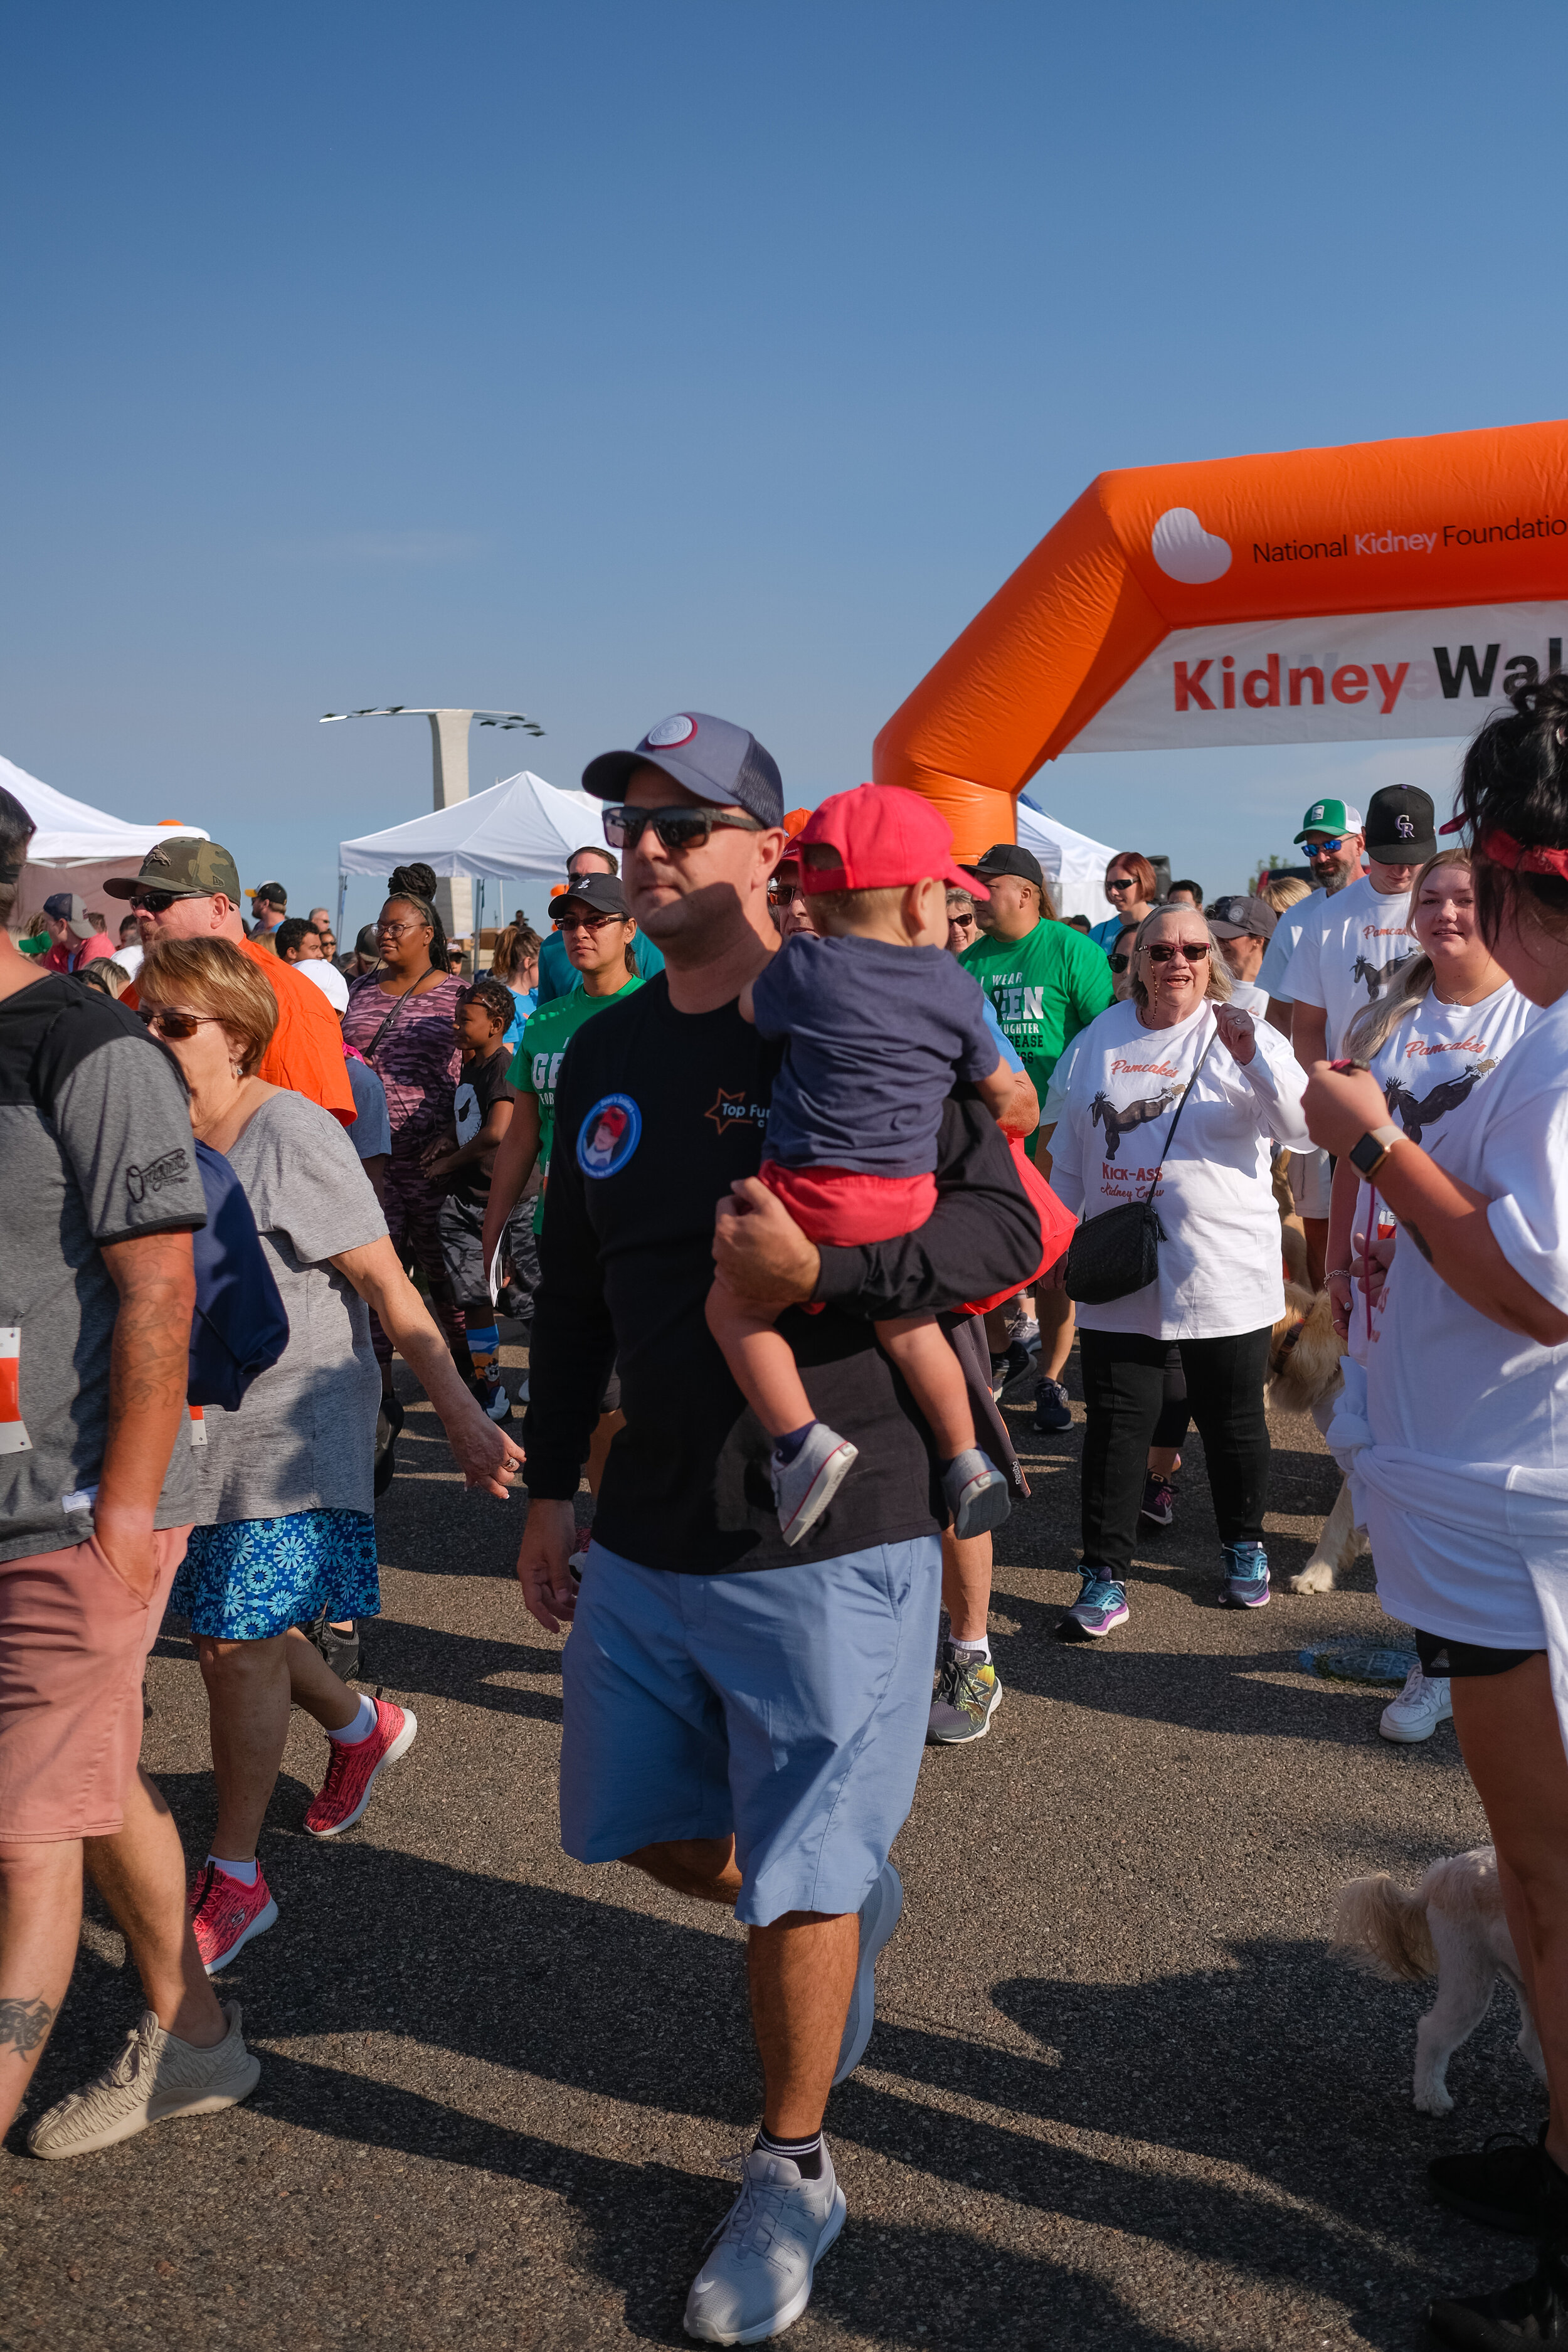 Denver Kidney Walk-68.jpg